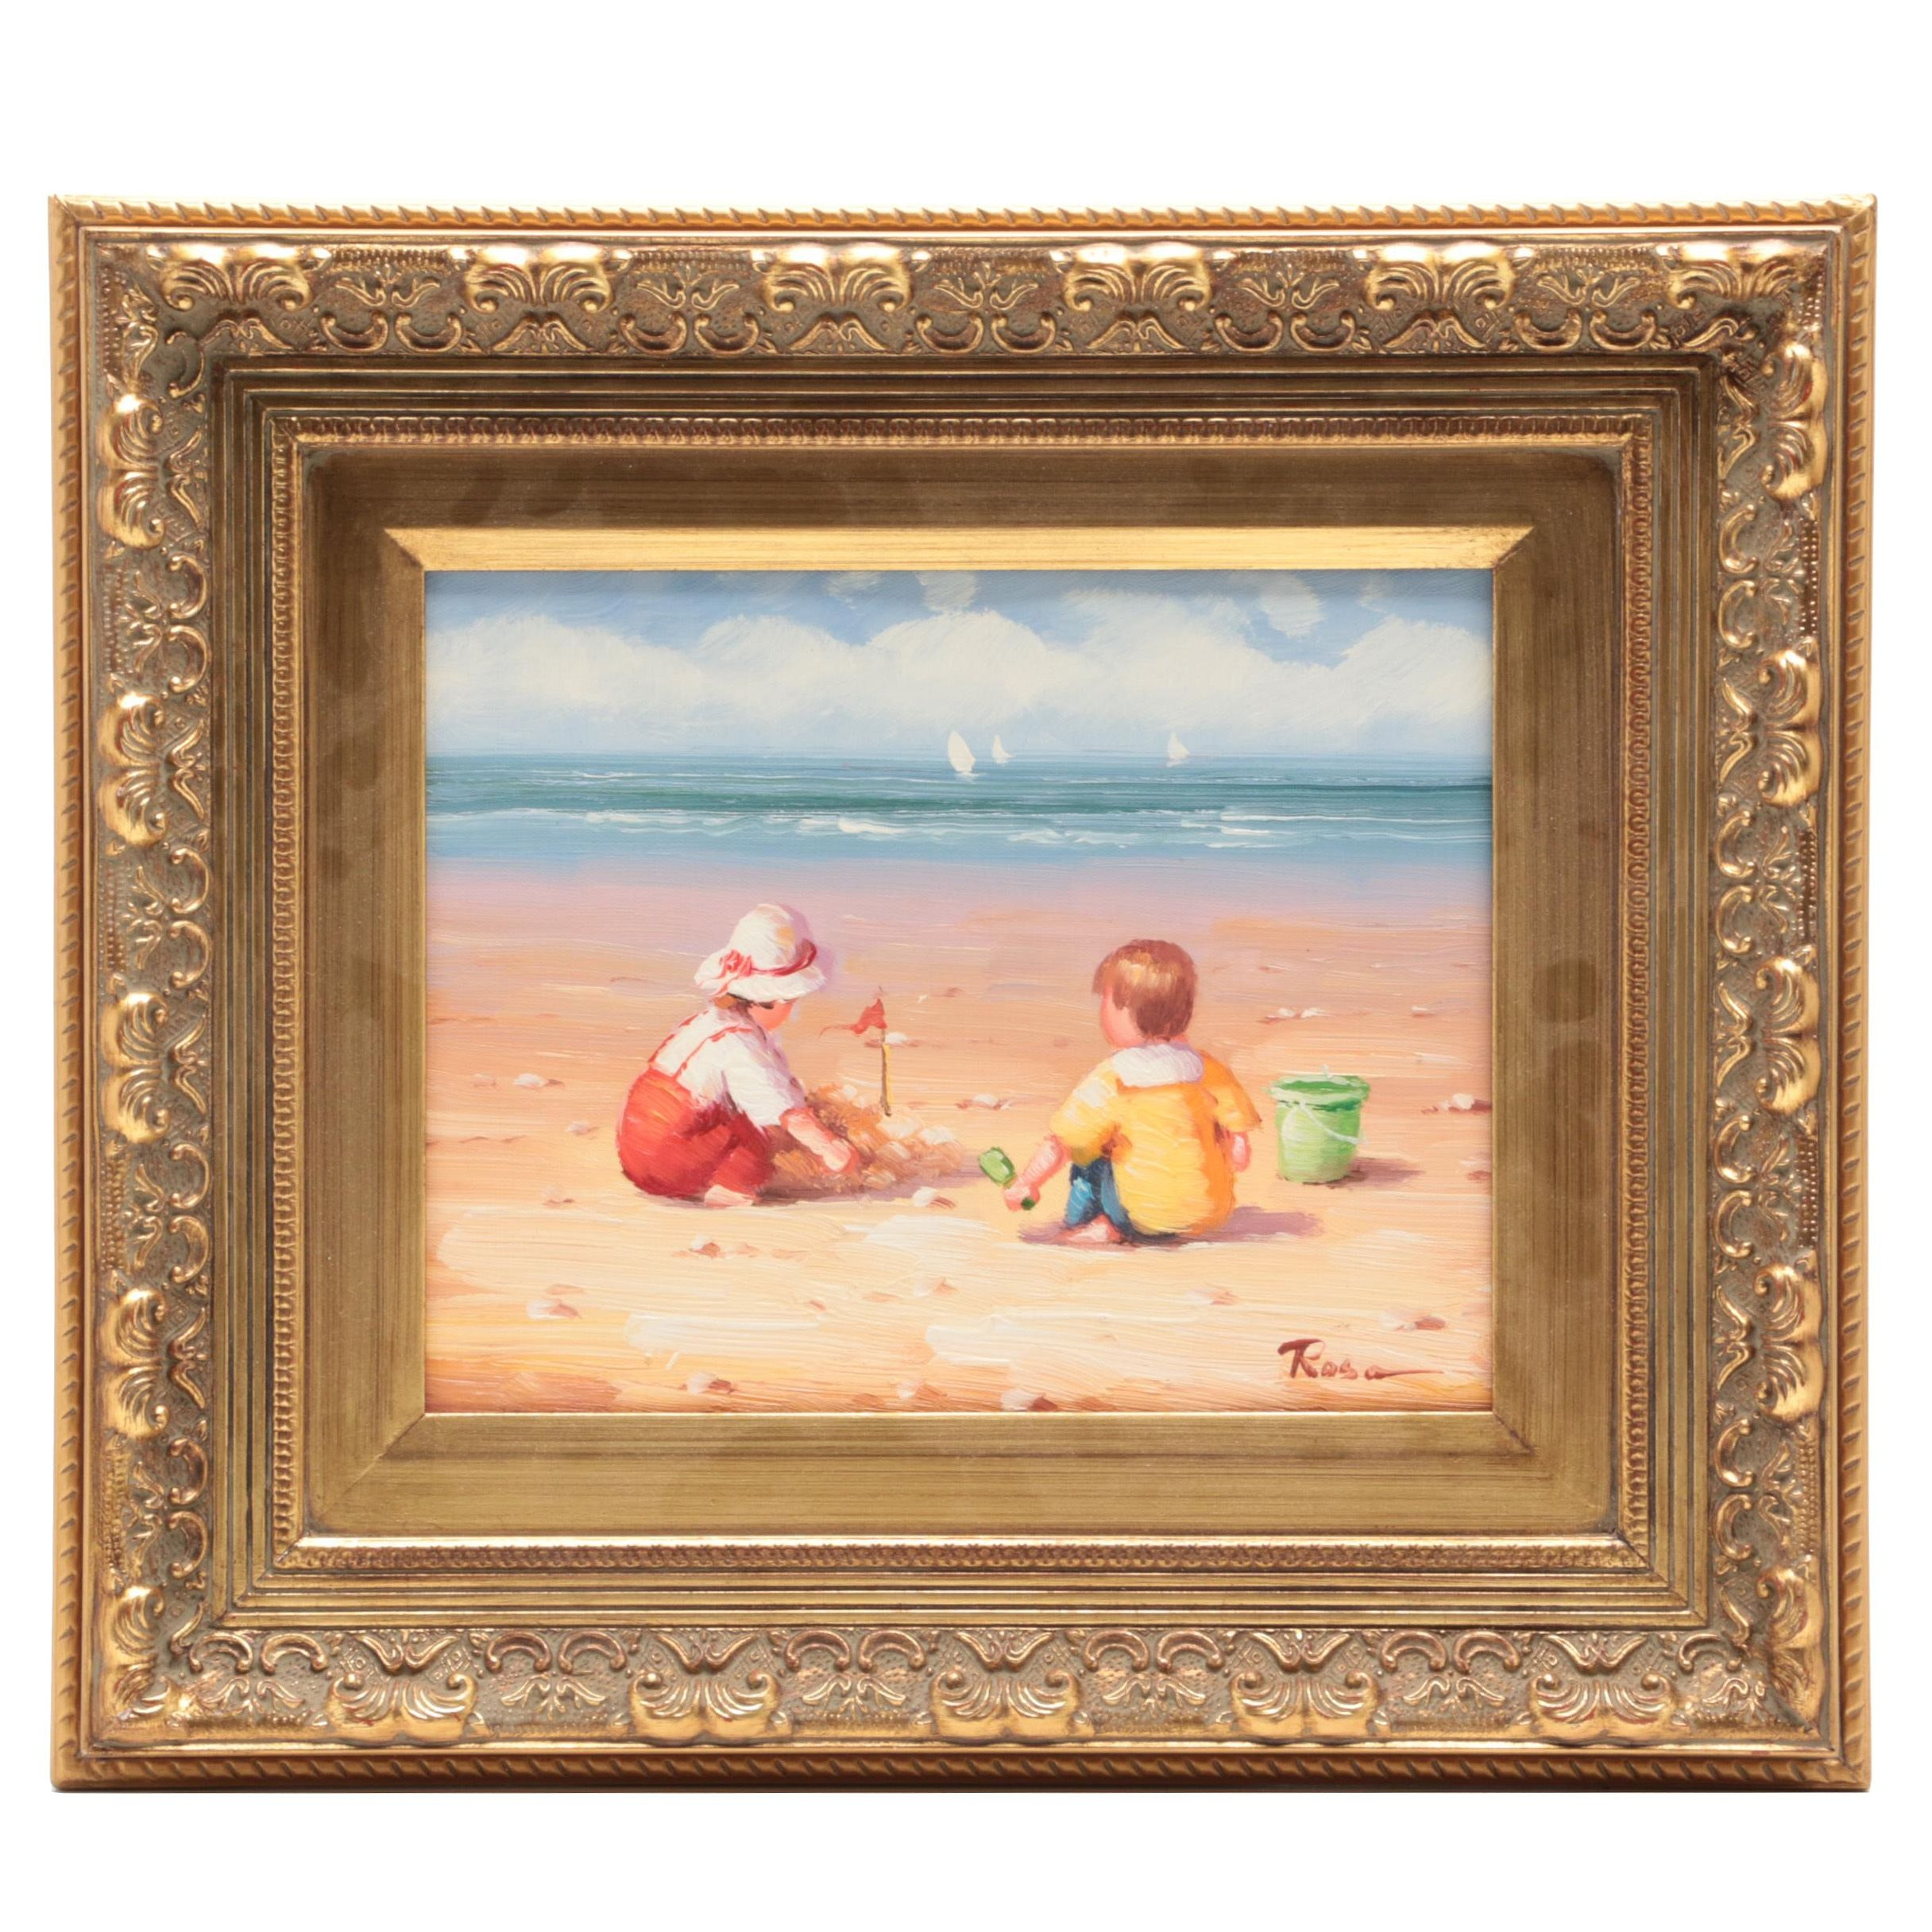 Rosa Oil Painting of Children at Shore